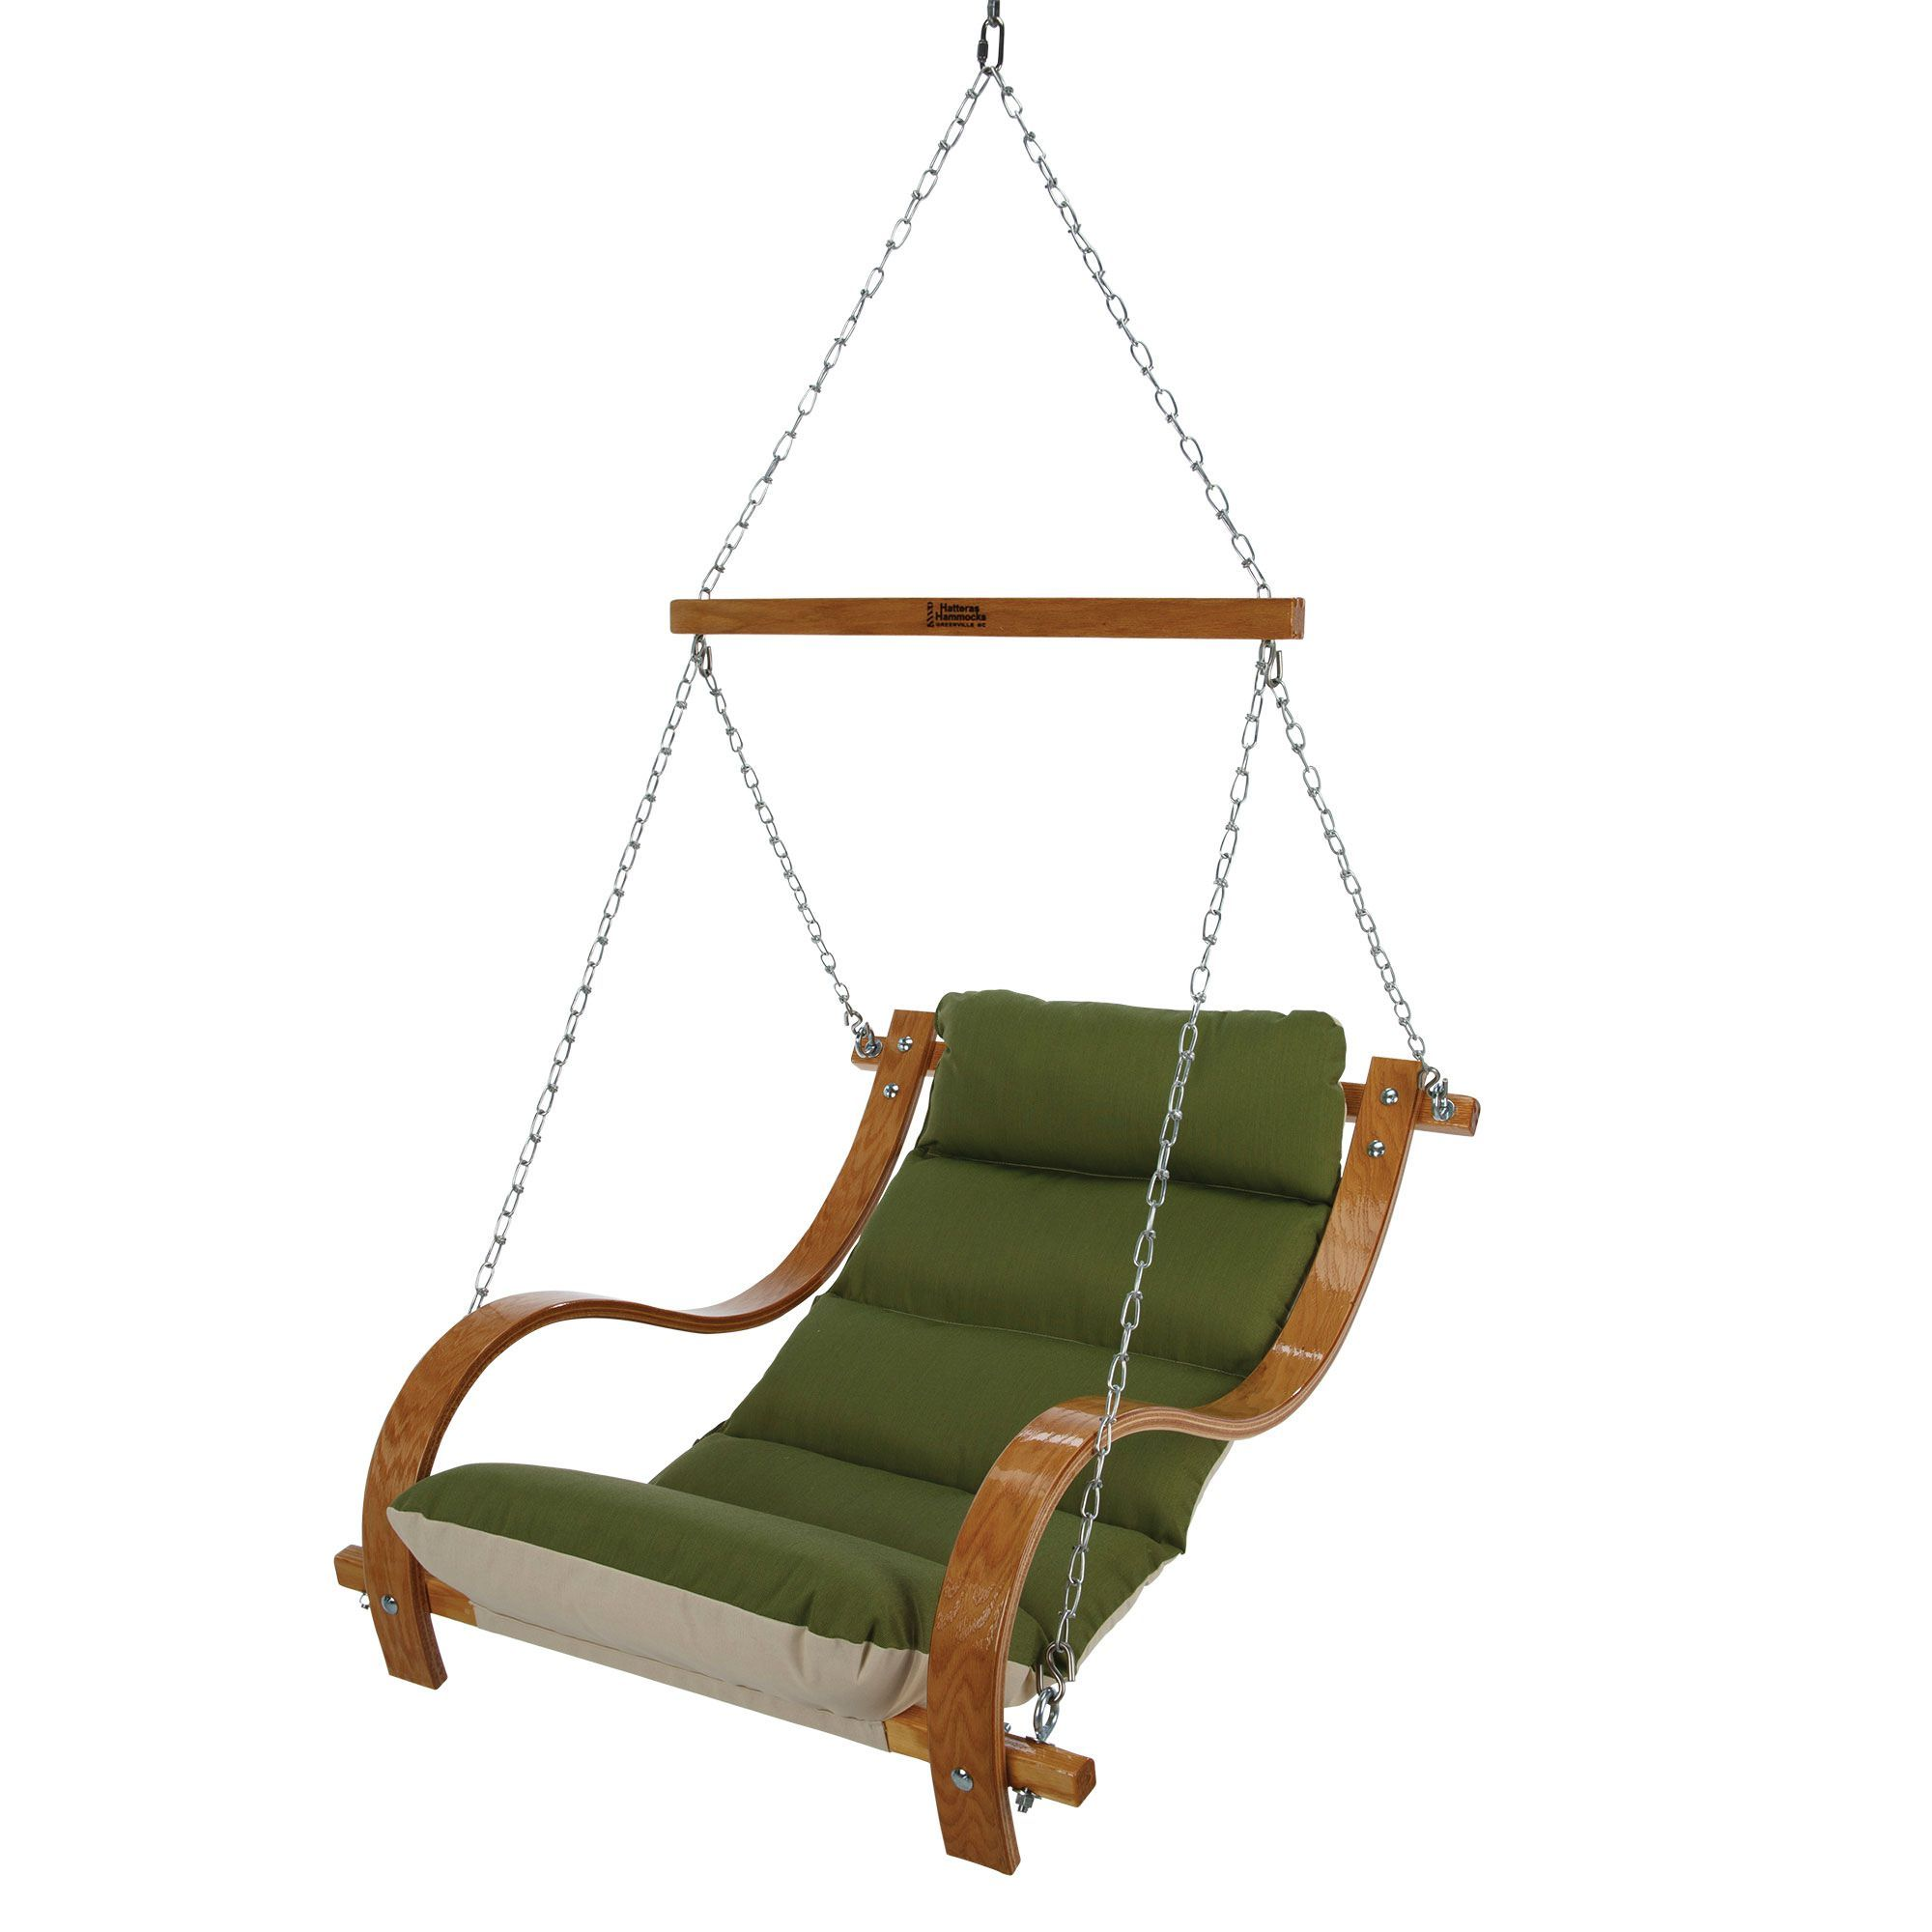 chairs swings gallery photo swinging dream photos hayneedle viewing vivere along attachment attractive hammock at furniture of original with chair